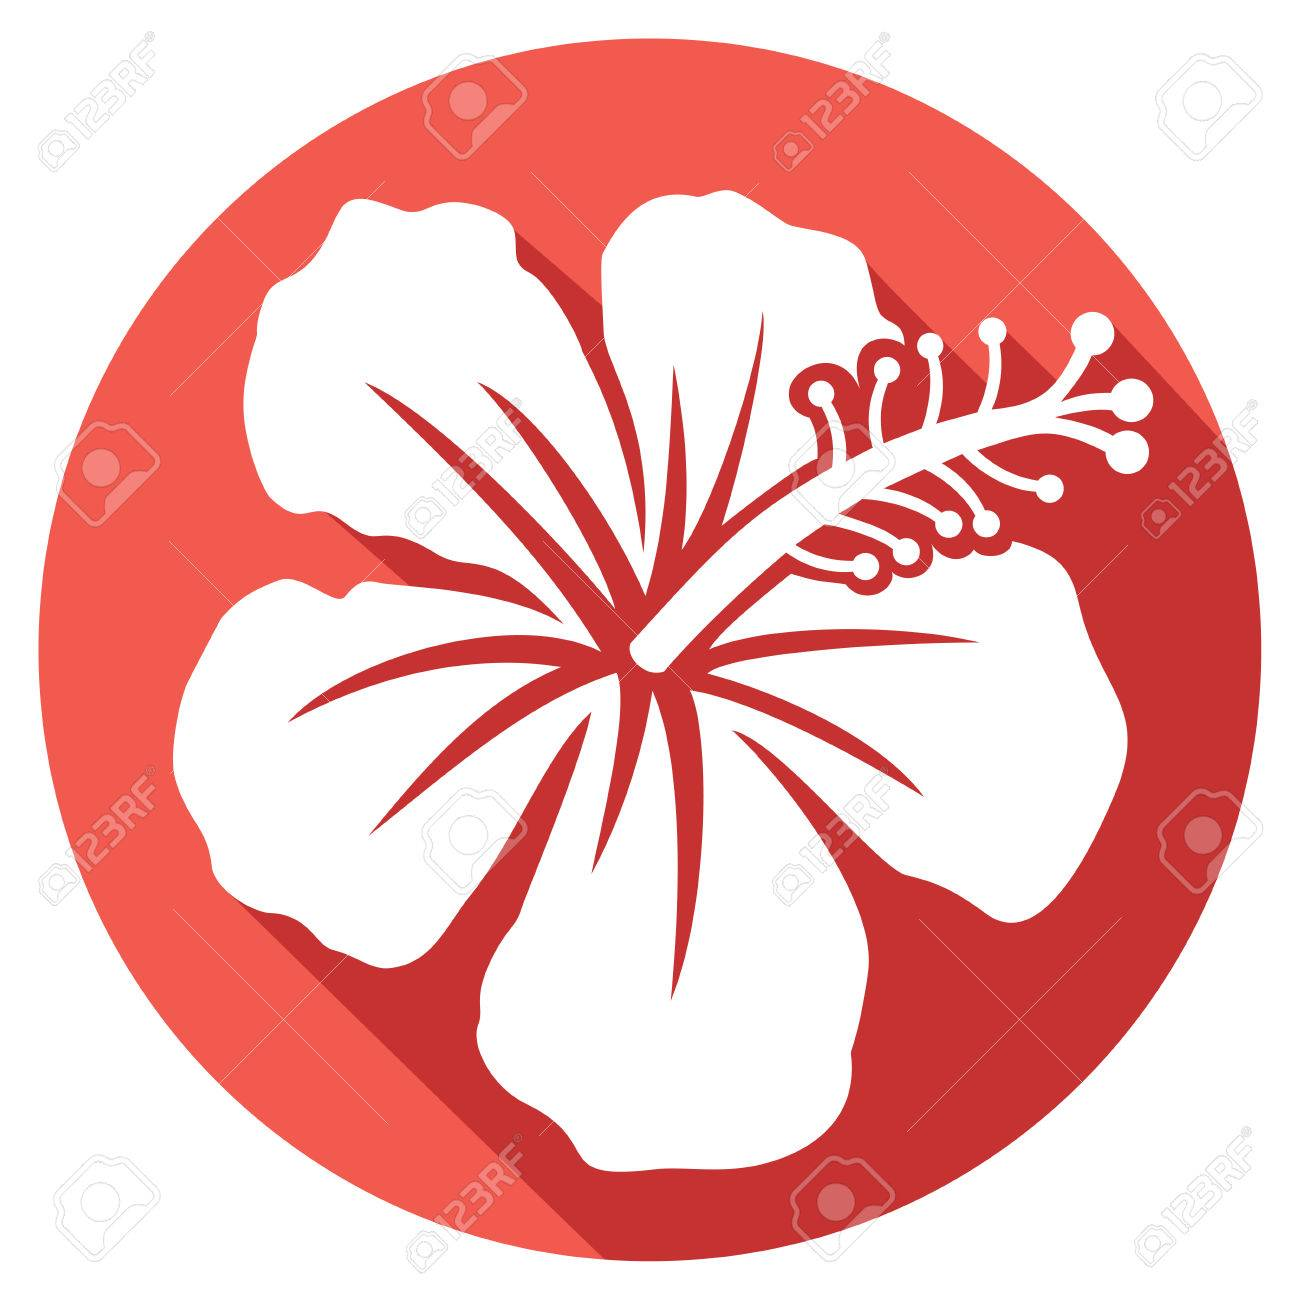 Hibiscus flower flat icon royalty free cliparts vectors and stock hibiscus flower flat icon stock vector 55363486 izmirmasajfo Image collections